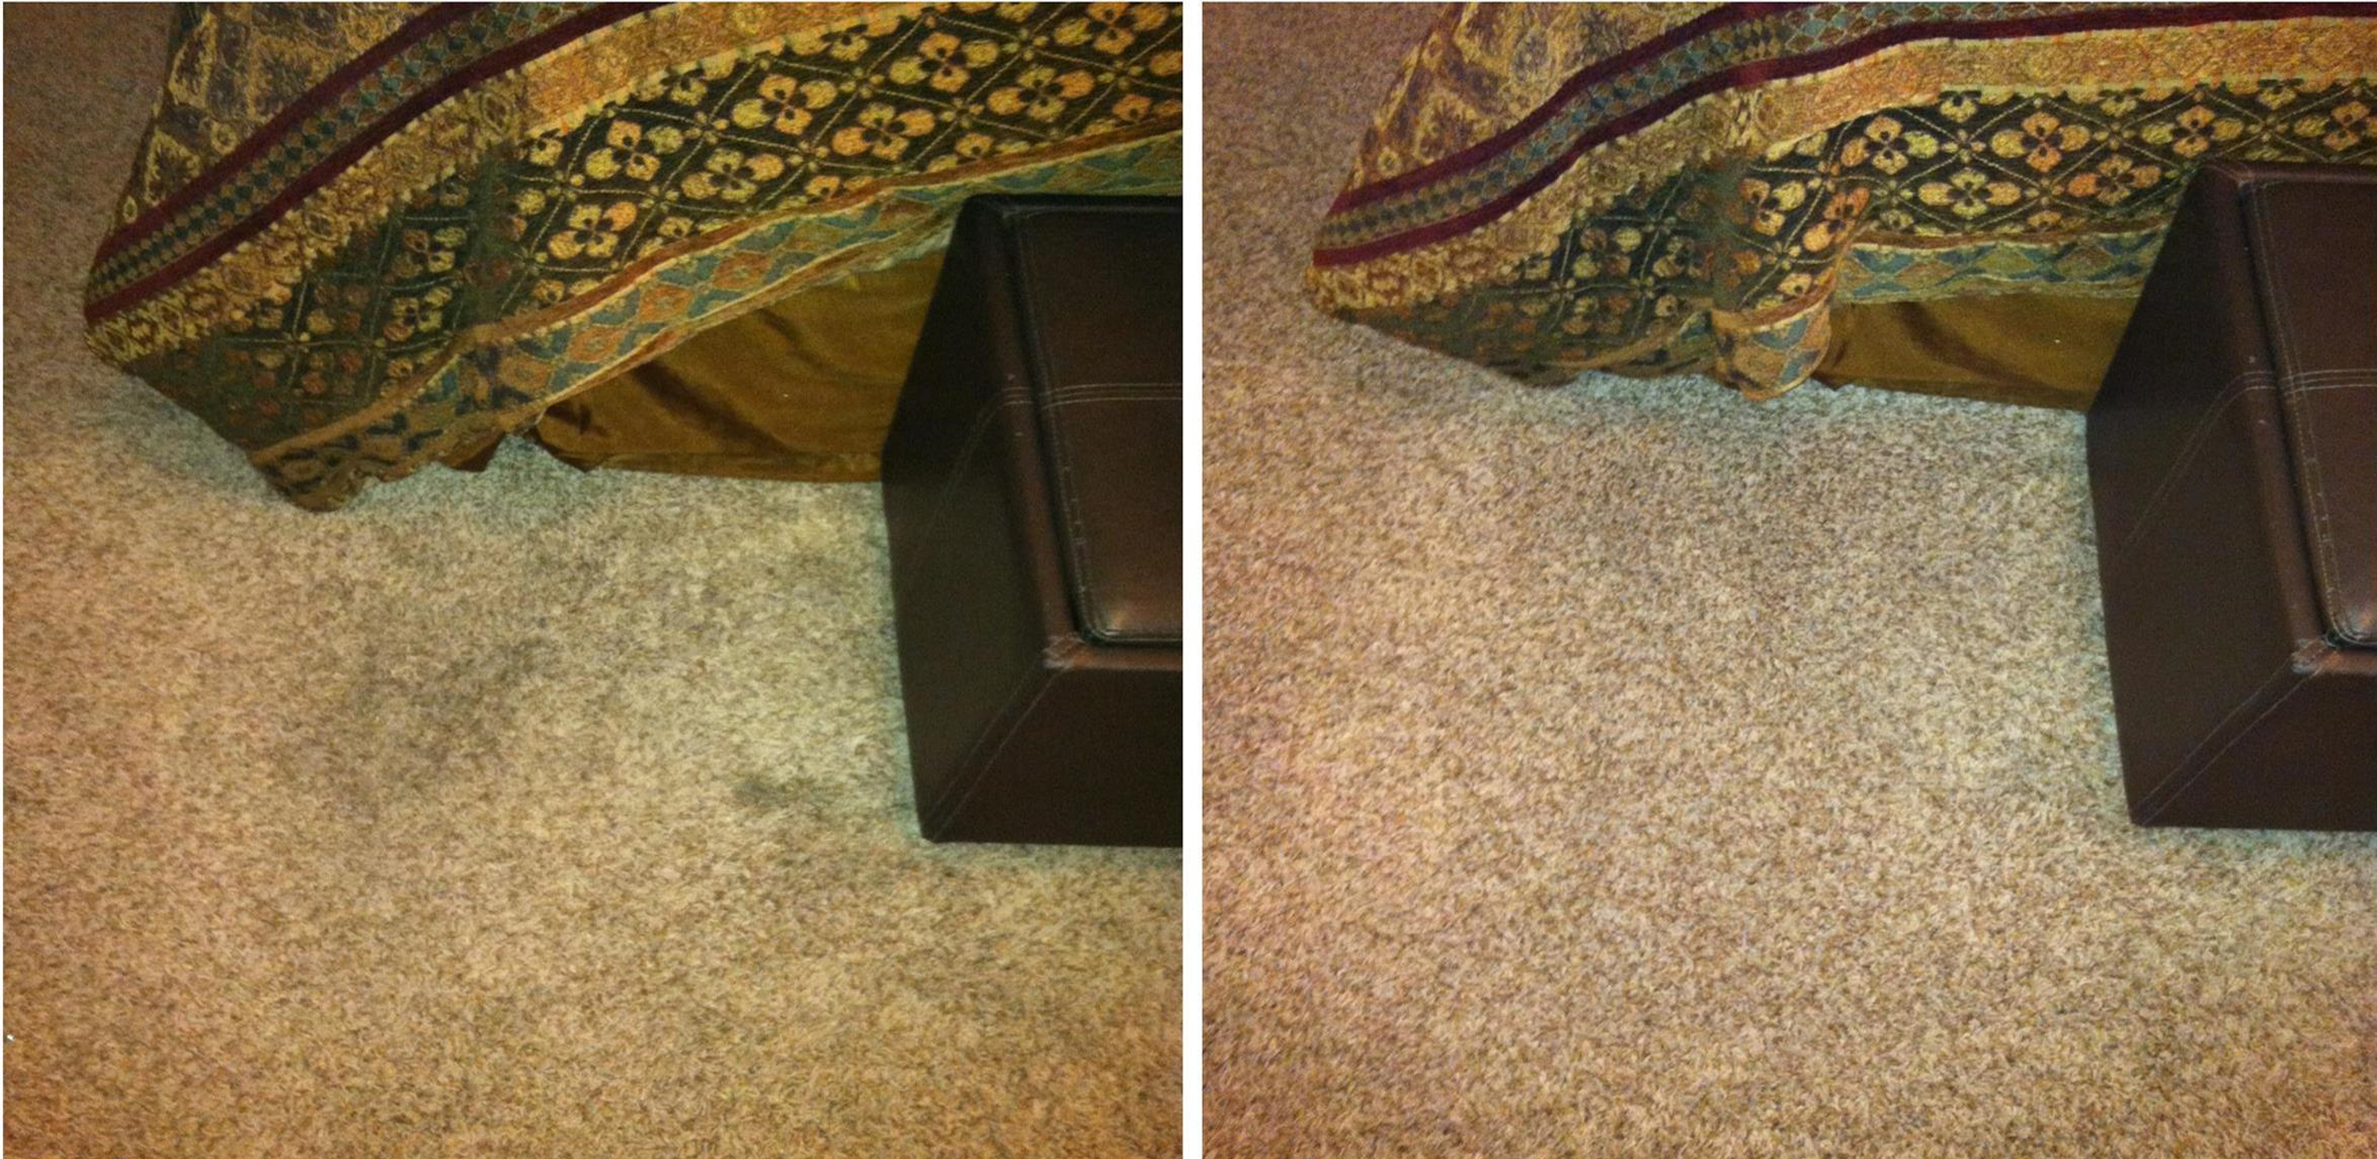 Eco Carpet Cleaning image 9